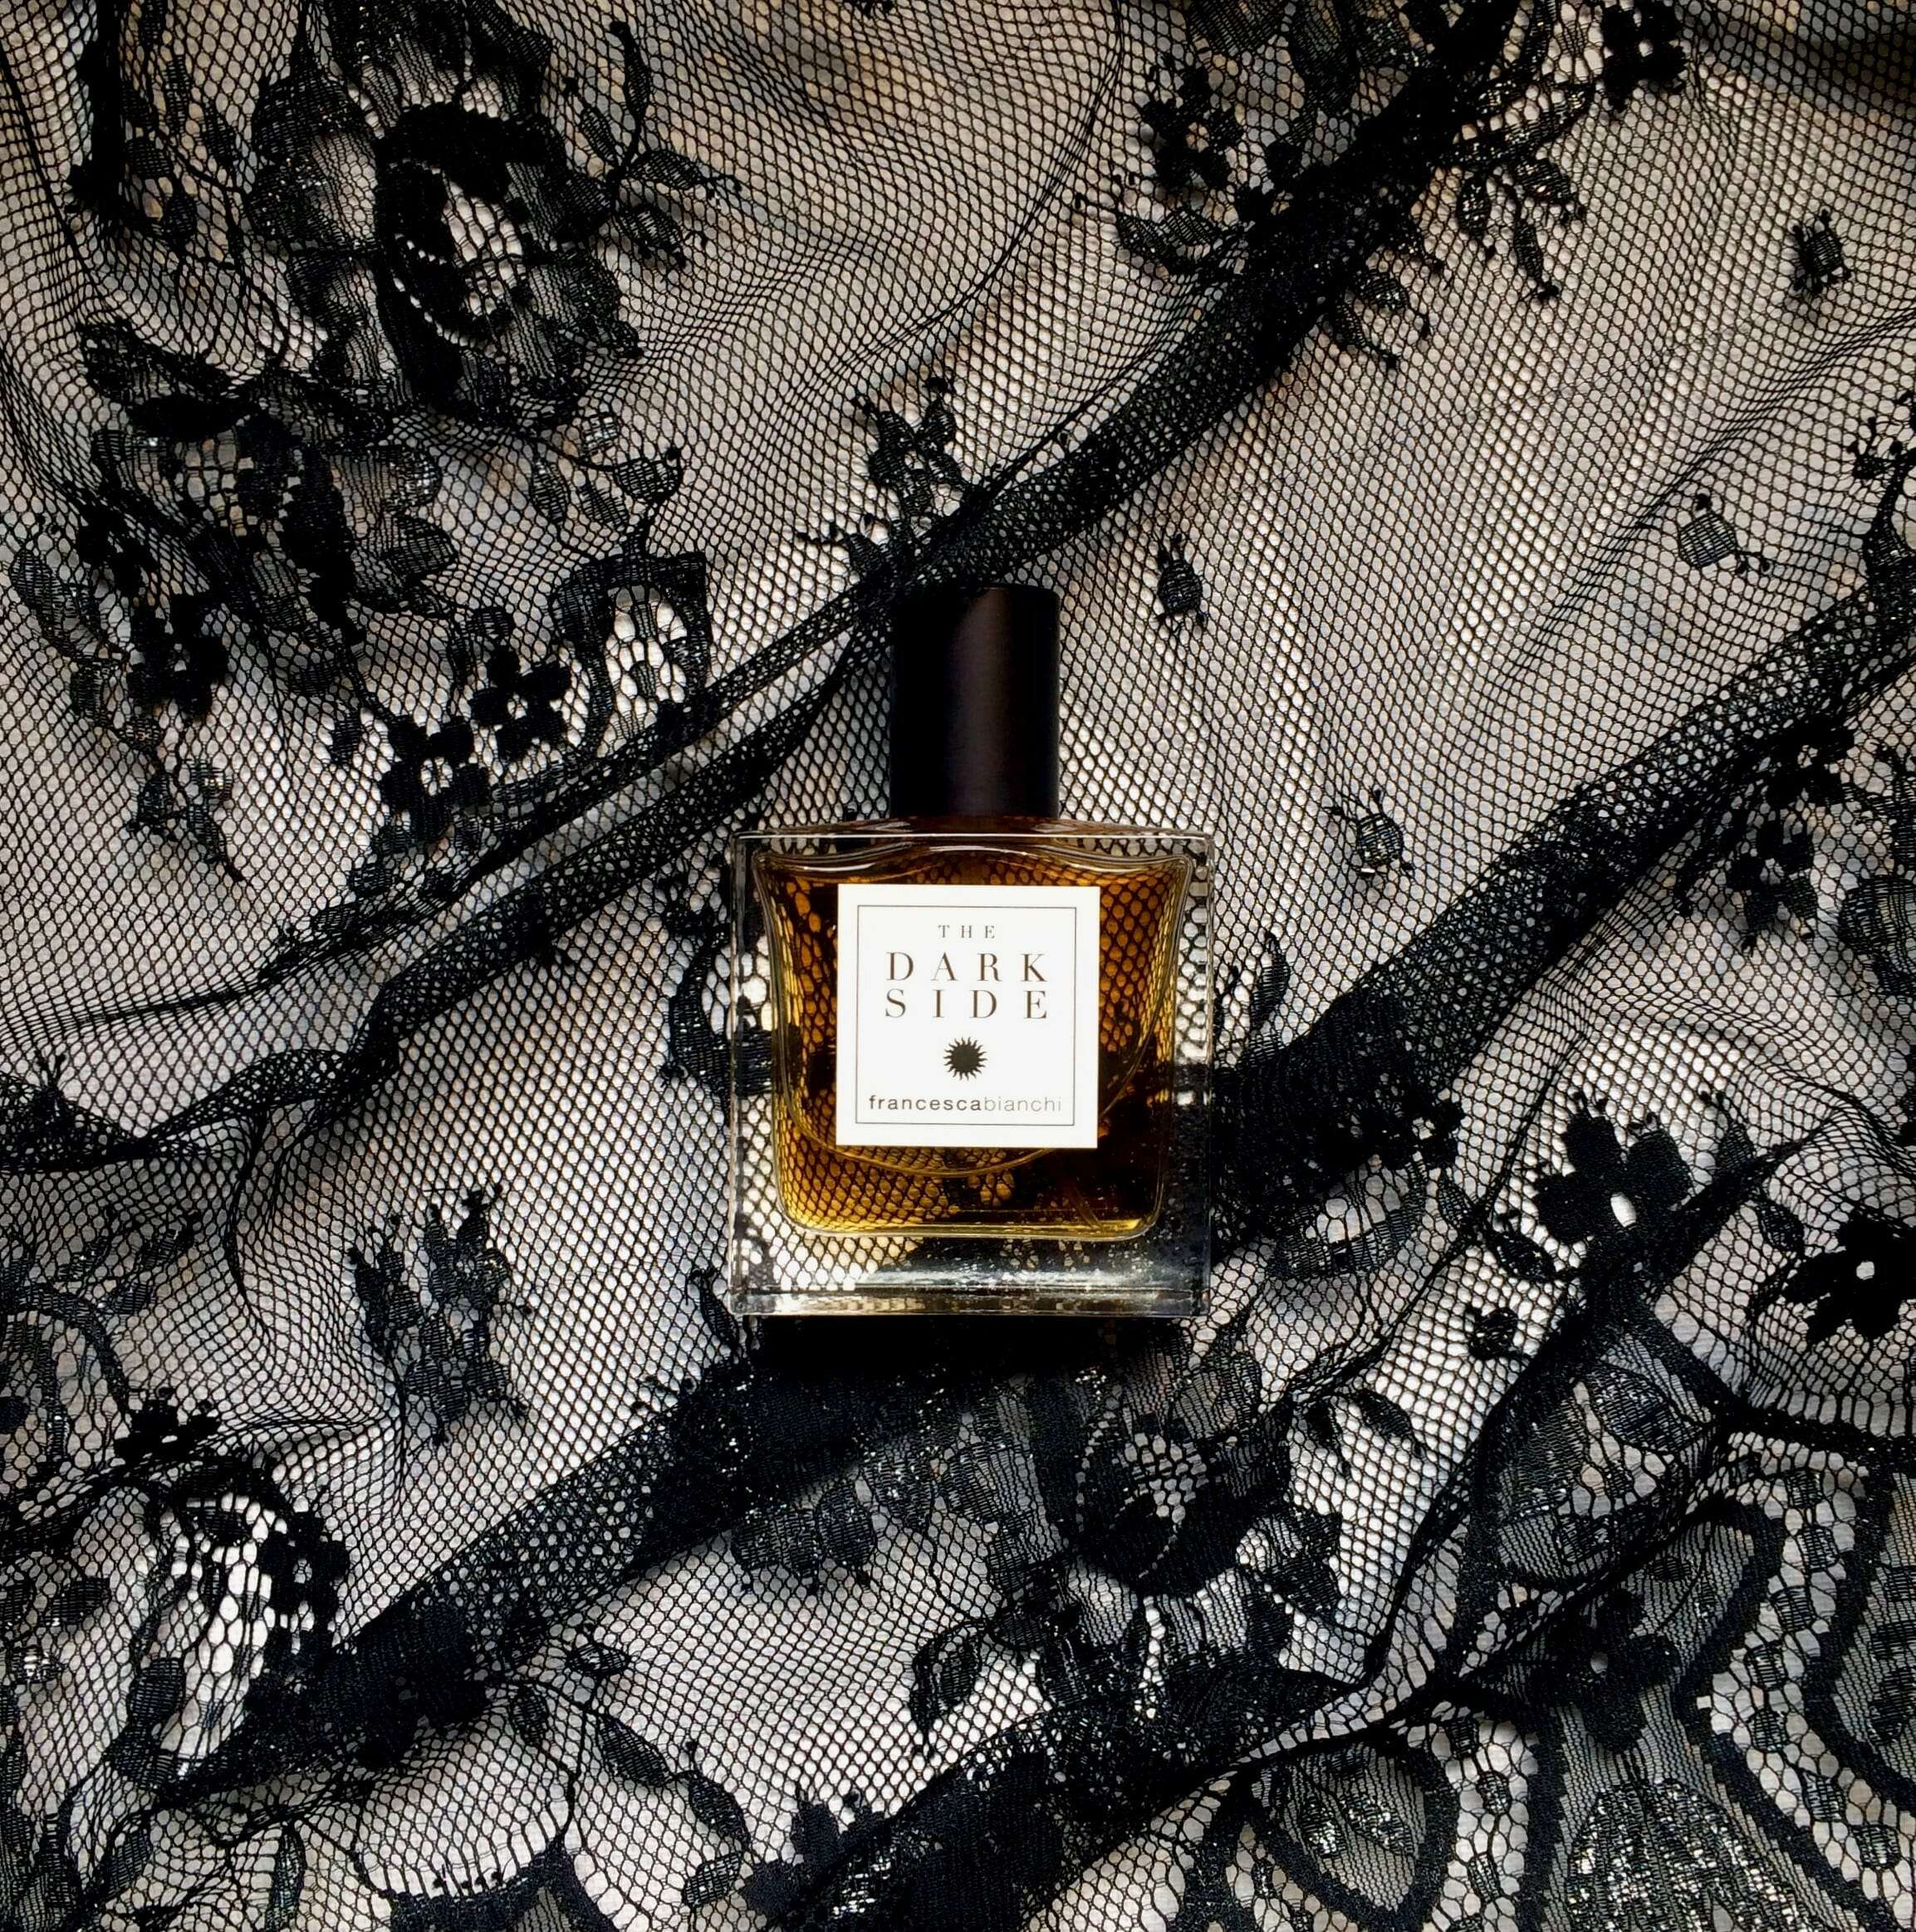 Dark Side over black textile | Francesca Bianchi Perfumes